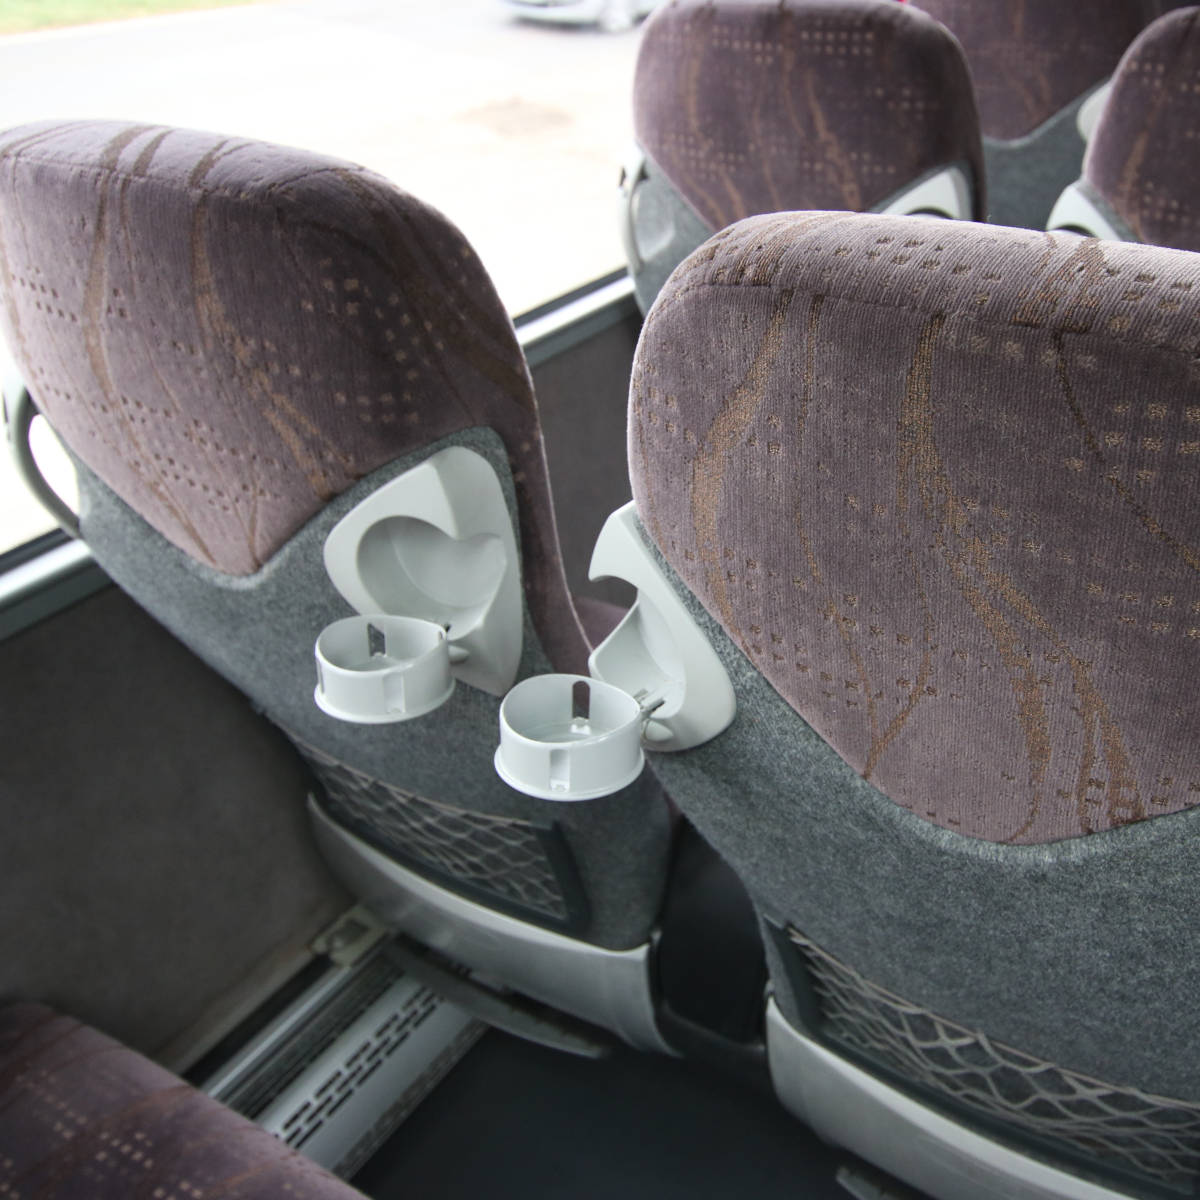 An image of 53 Seat Luxury Coach, Cup Holders Detail goes here.